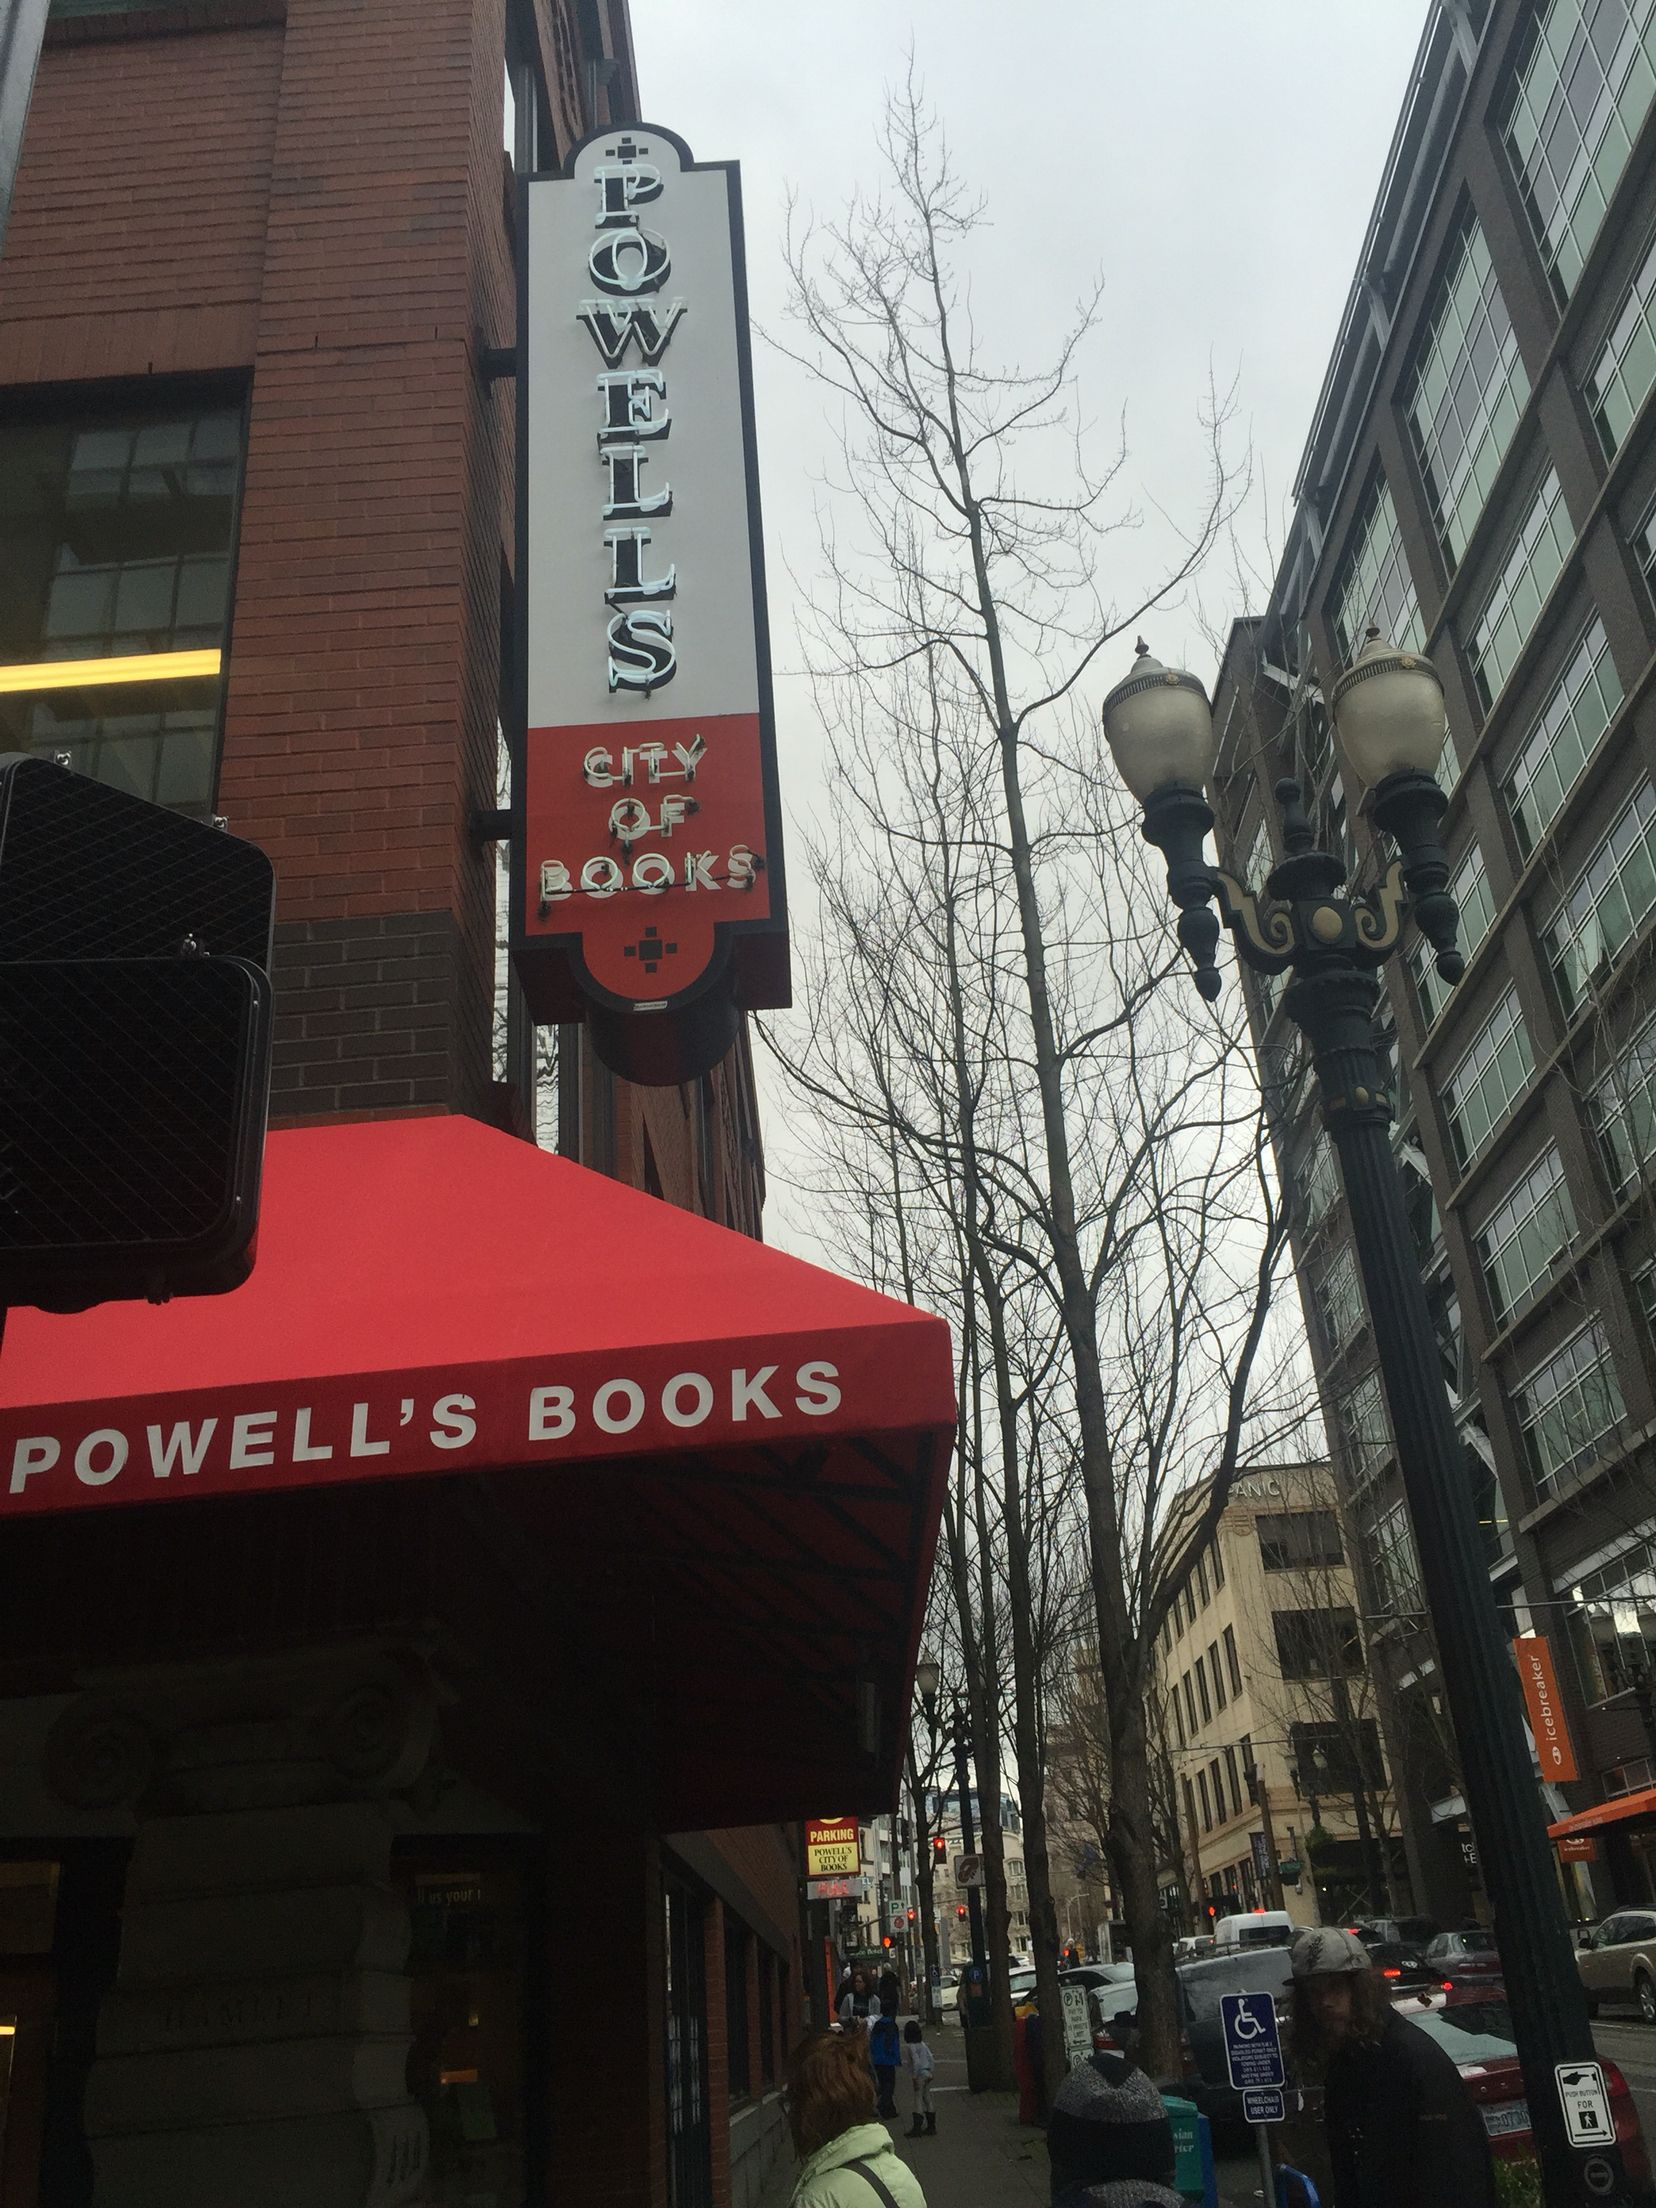 Powells bookstore, Portland,OR. I could have stayed for hours